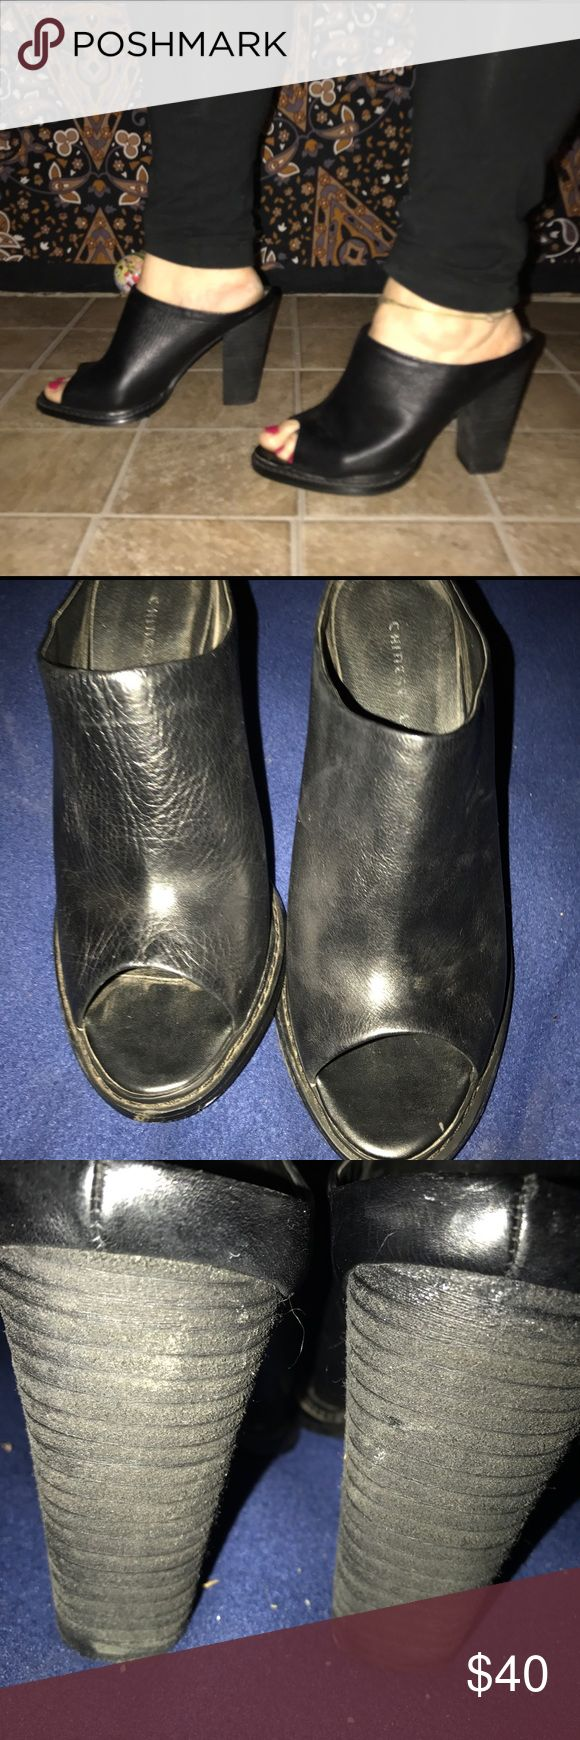 Chinese Laundry leather Black Mules size 10 Chinese Laundry leather Black Mules size 10 Chinese Laundry Shoes Mules & Clogs